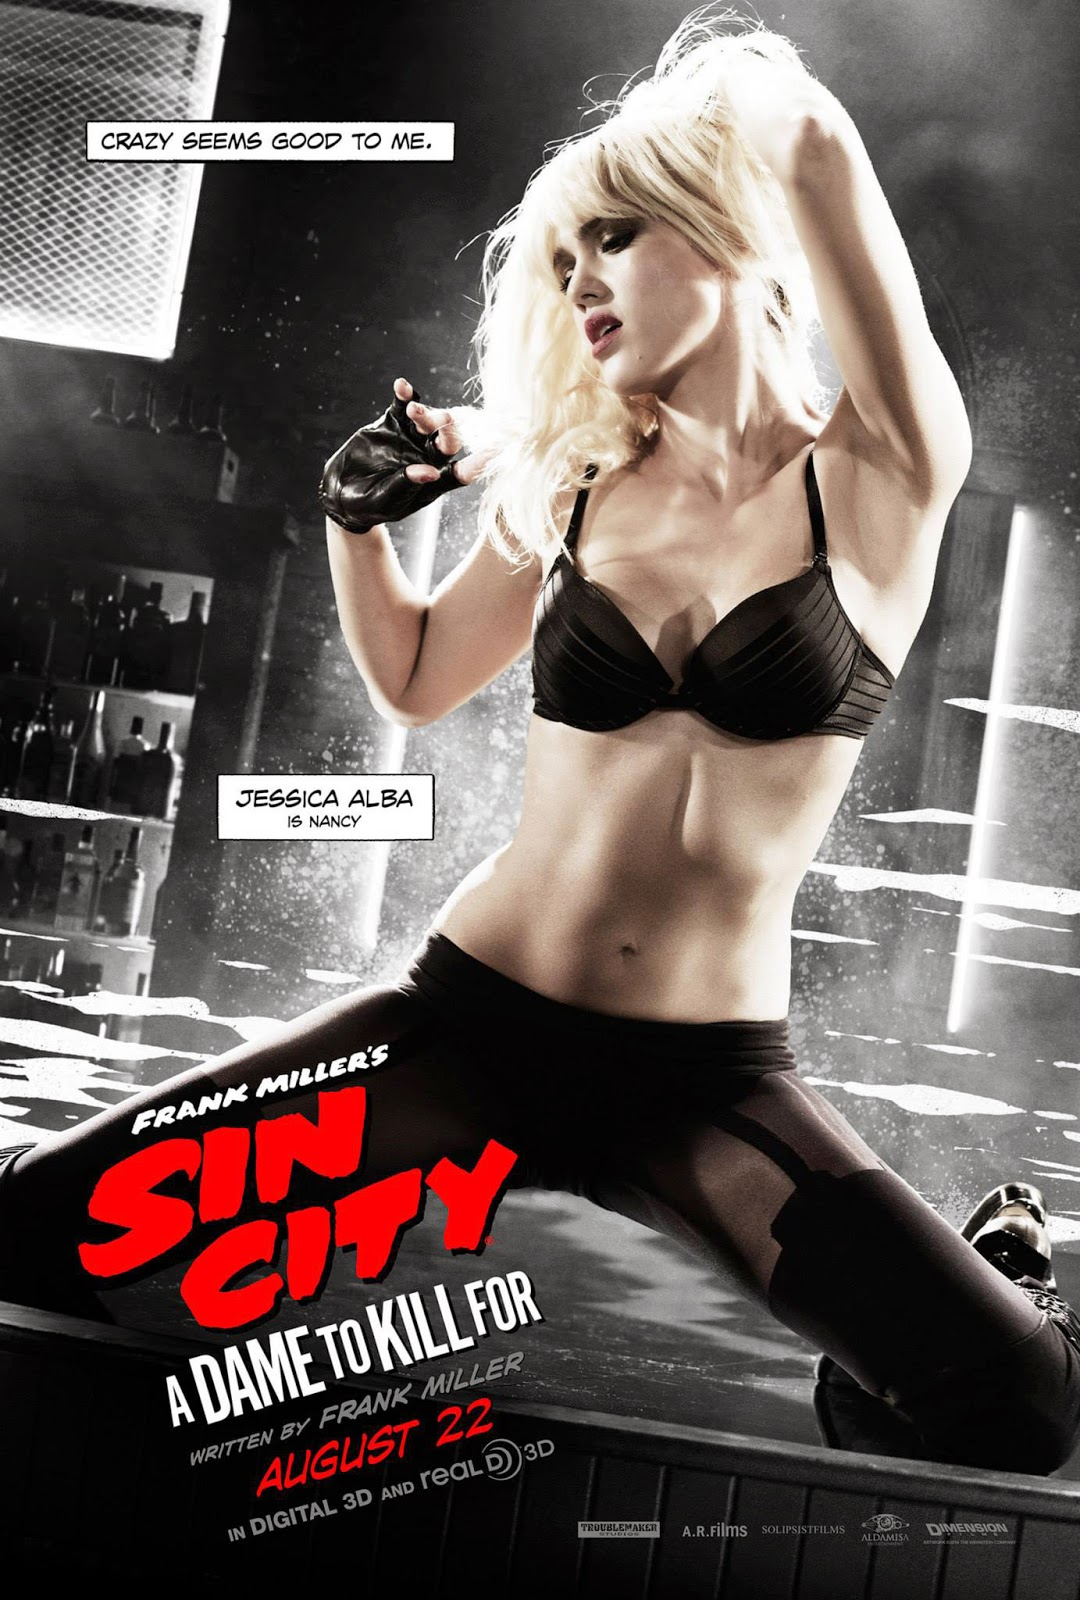 Sin City 2 A dame to kill for Ver gratis online en vivo streaming sin descarga ni torrent 2014